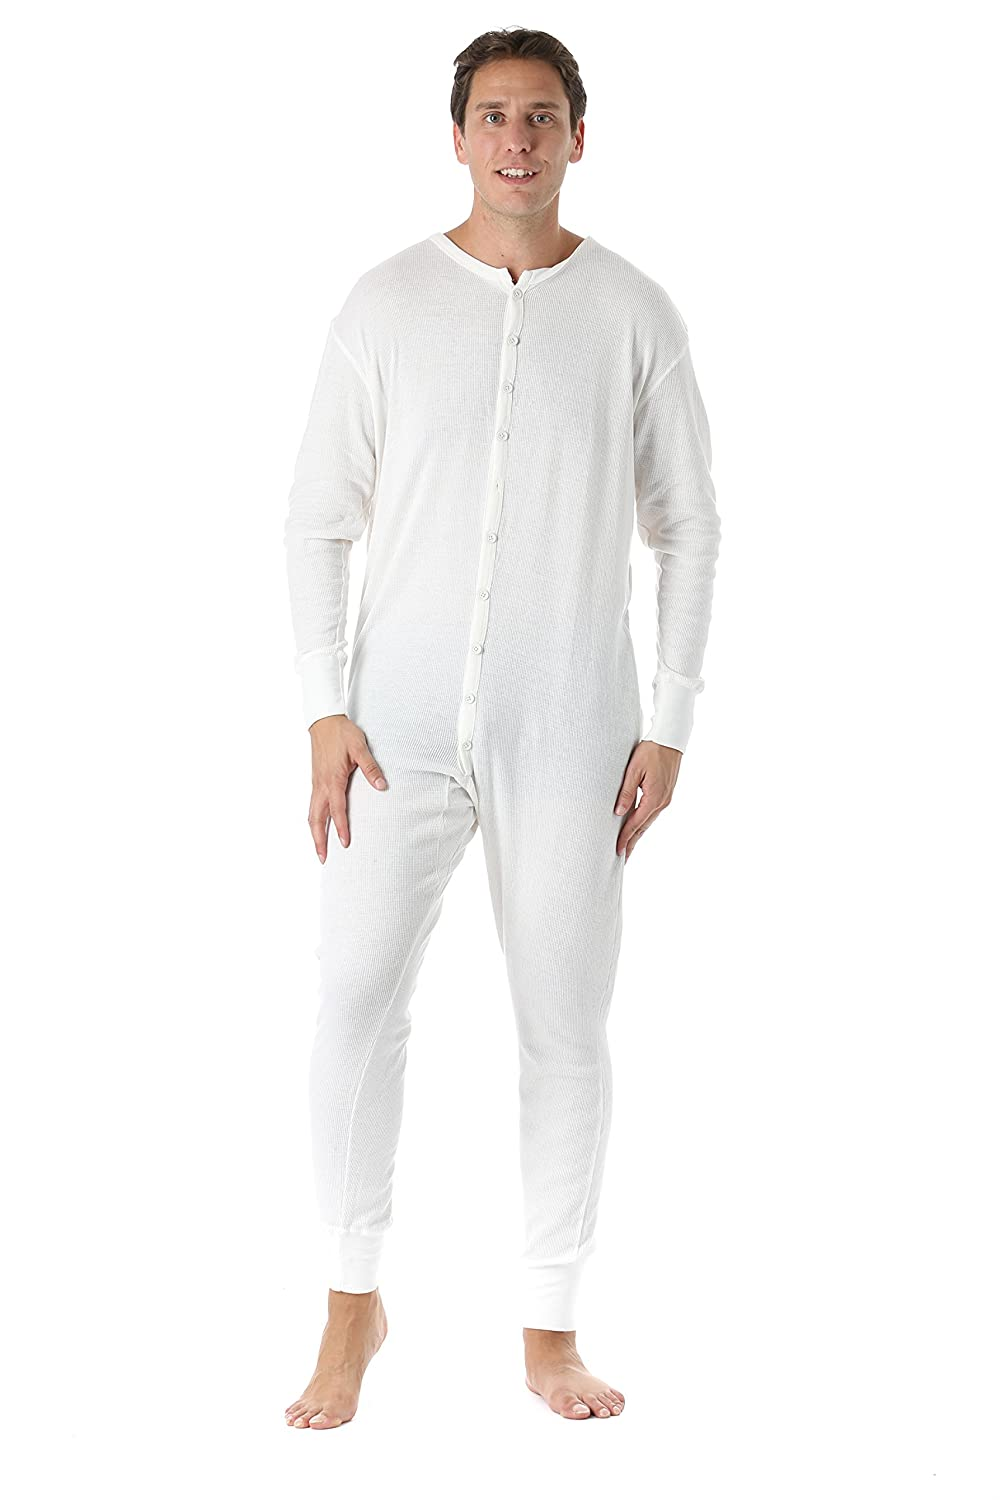 Men's Steampunk Clothing, Costumes, Fashion #followme Mens Solid Thermal Henley Adult Onesie $19.99 AT vintagedancer.com